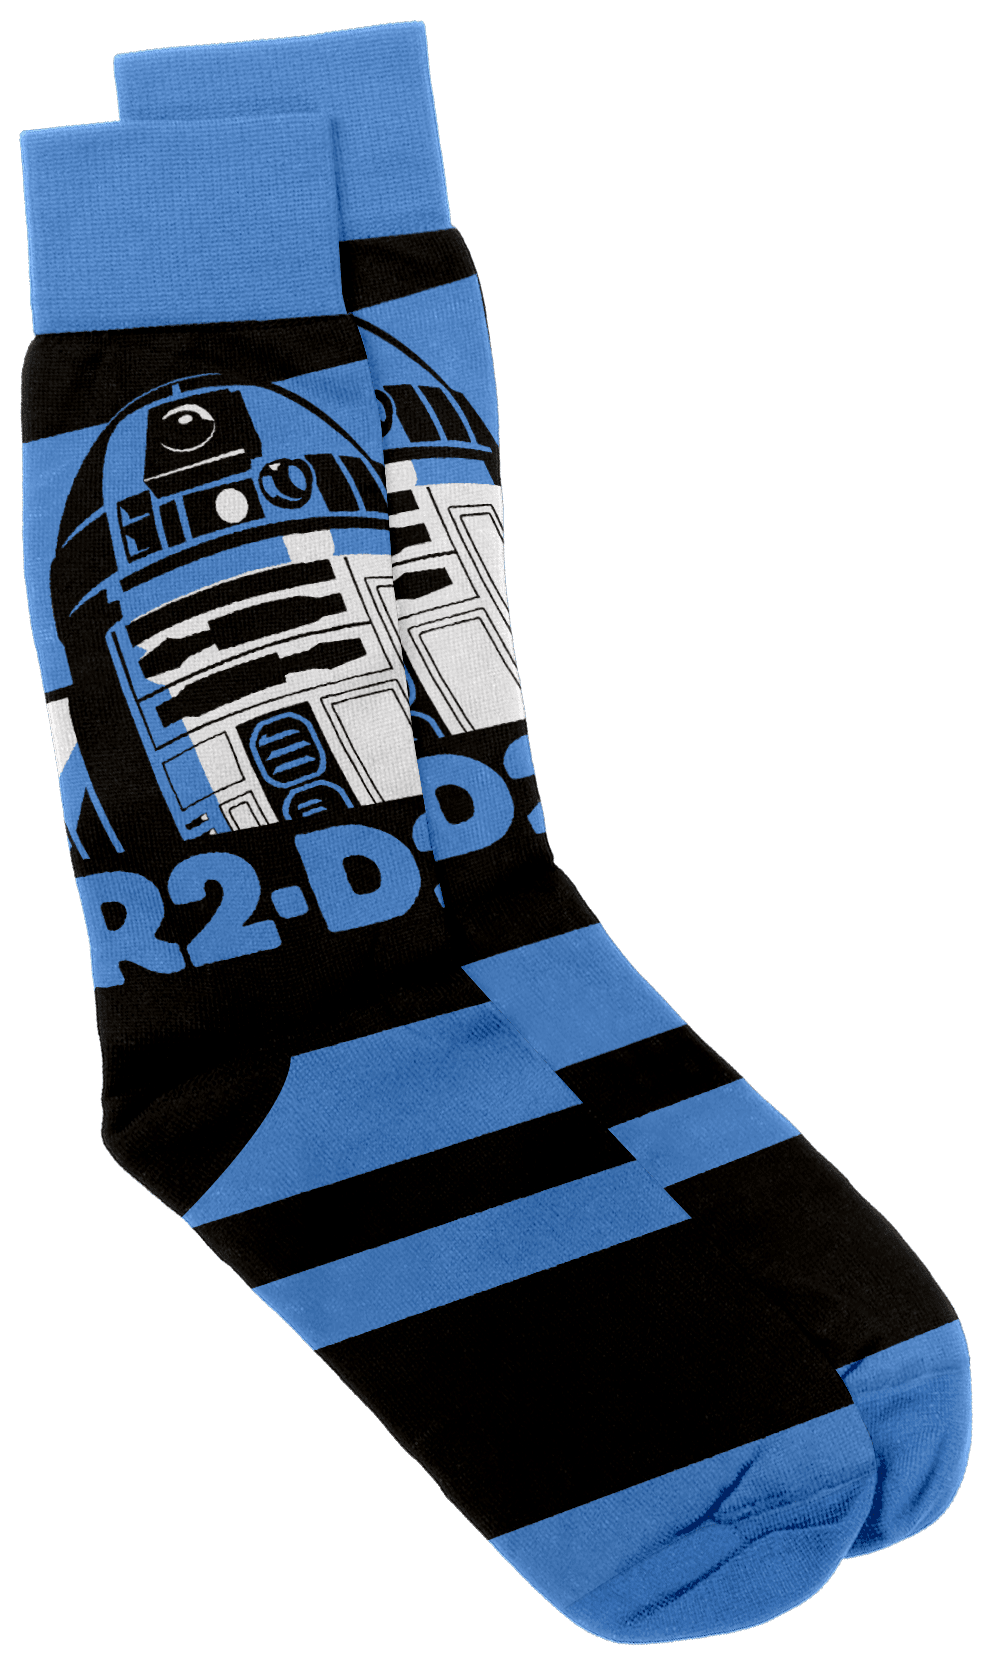 Star Wars Sock R2-D2